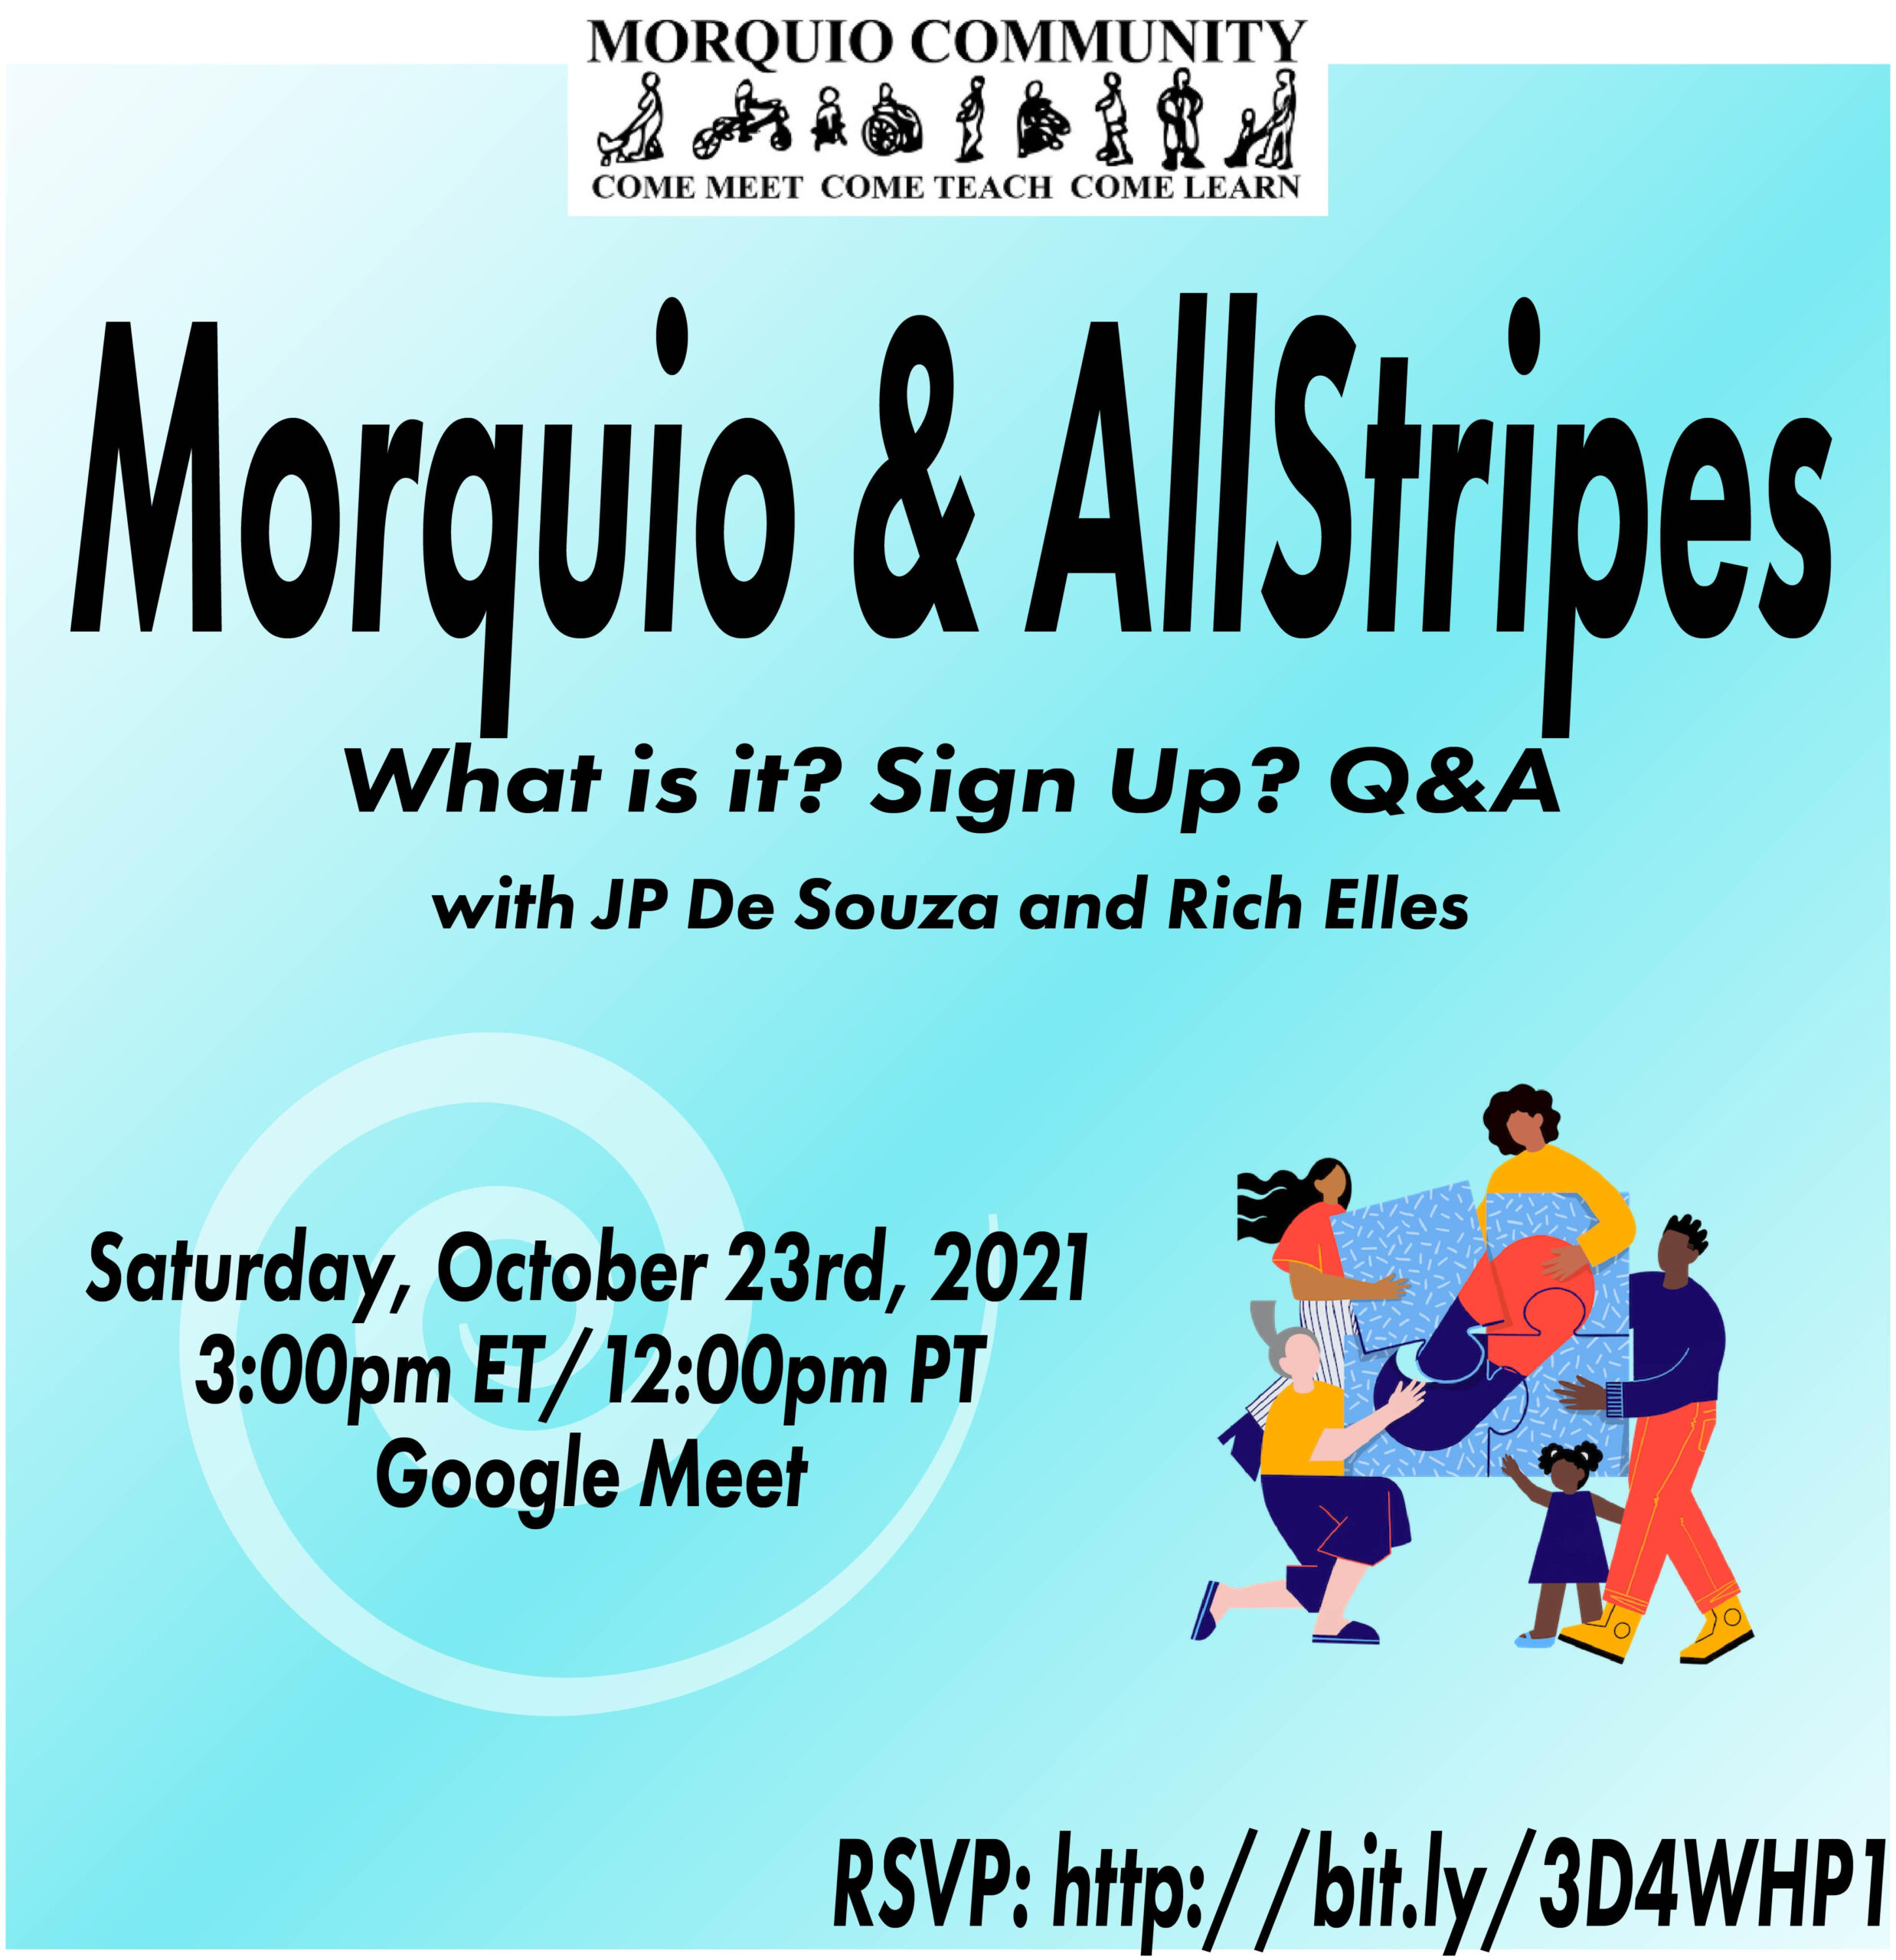 An event poster inviting all to a meeting with Allstripes, hosted by the Morquio Community.